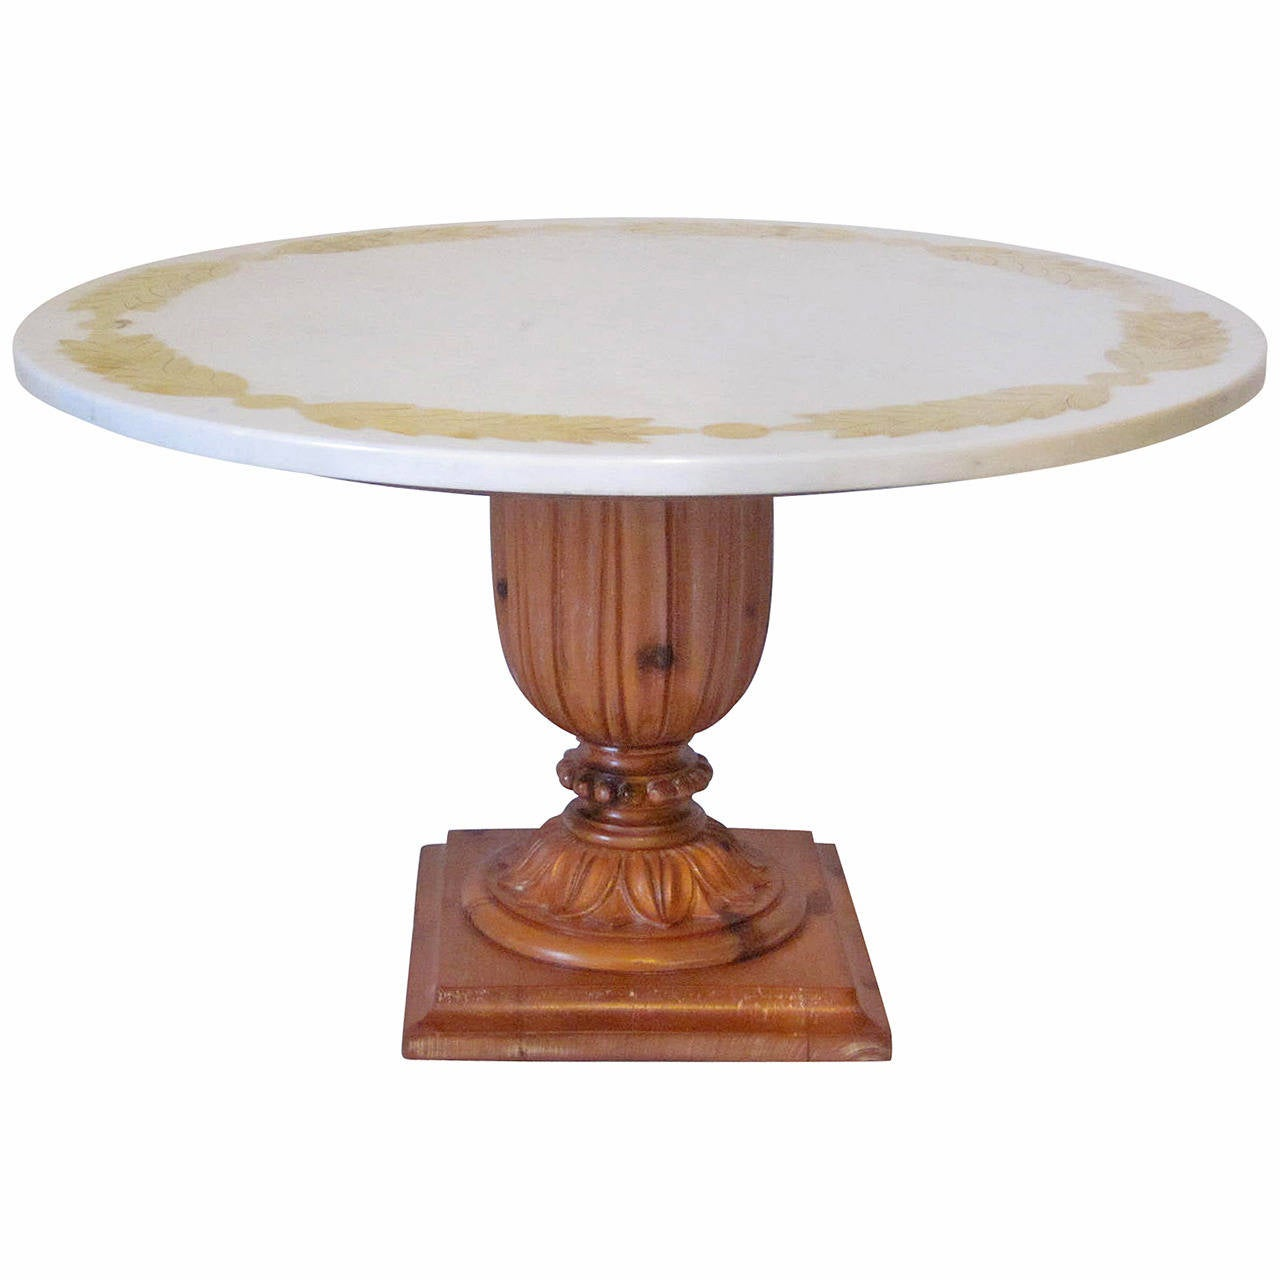 Marquetry Marble Coffee Table: Niccolini Brass Inlay Marble Coffee Table At 1stdibs